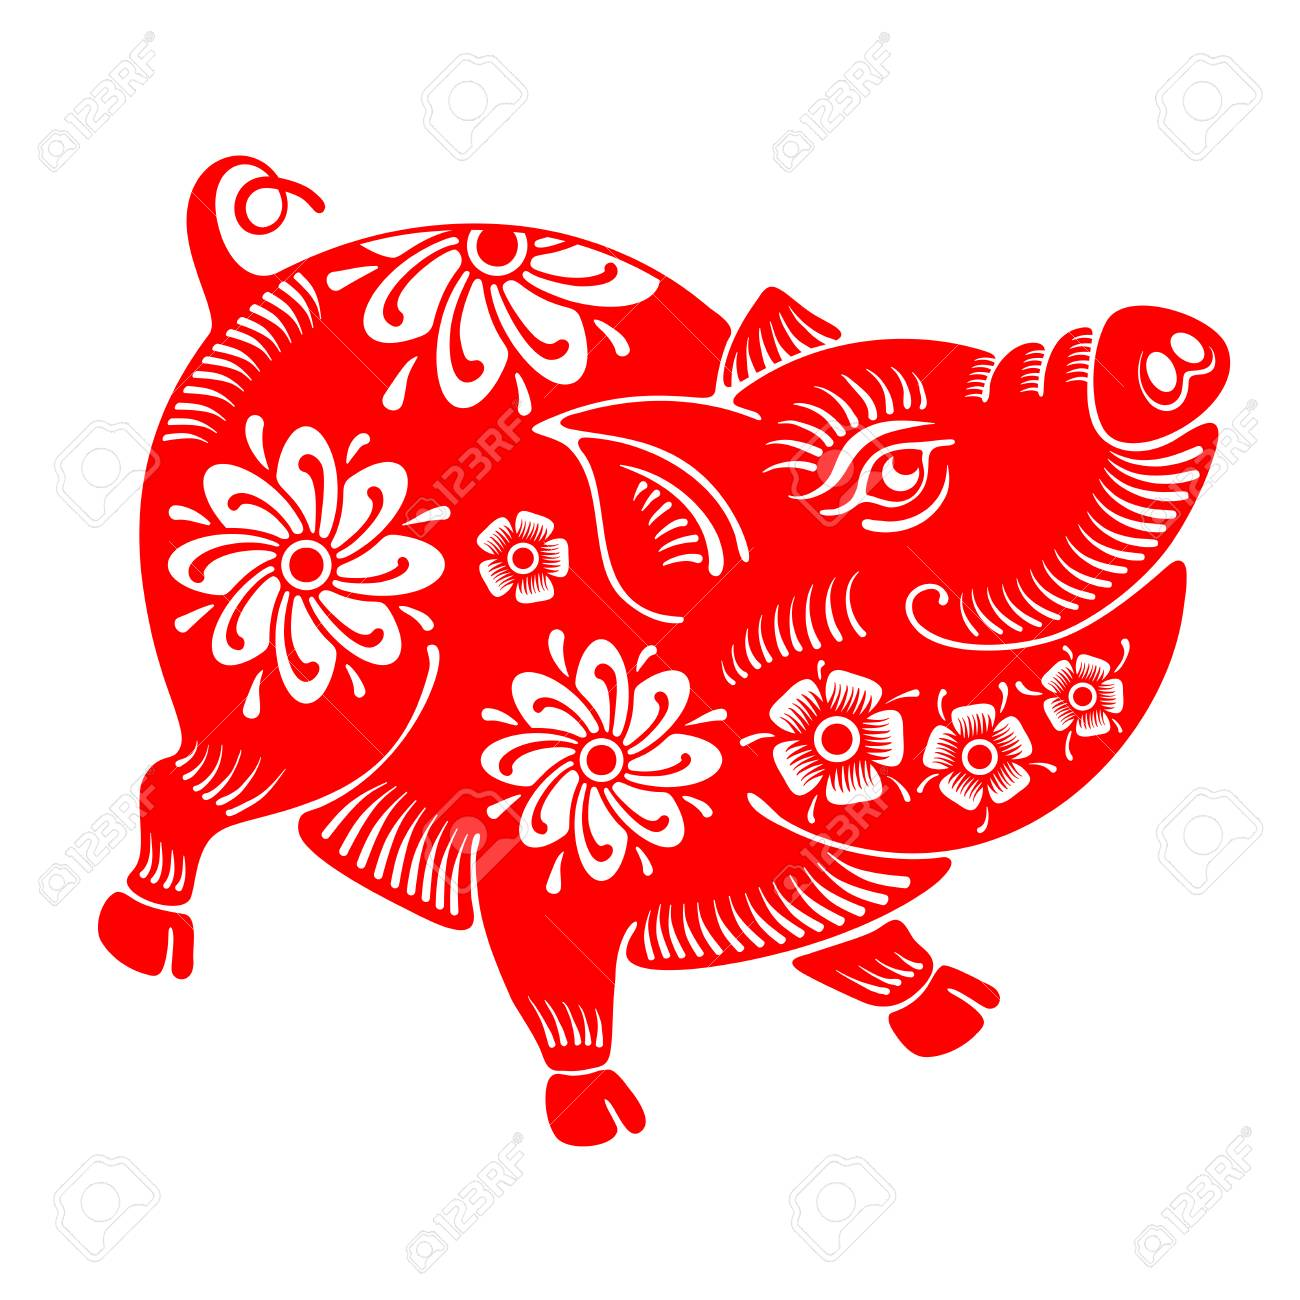 Cute cheerful pig, Chinese zodiac symbol of 2019 year, isolated on white background. Vector illustration. - 104790595